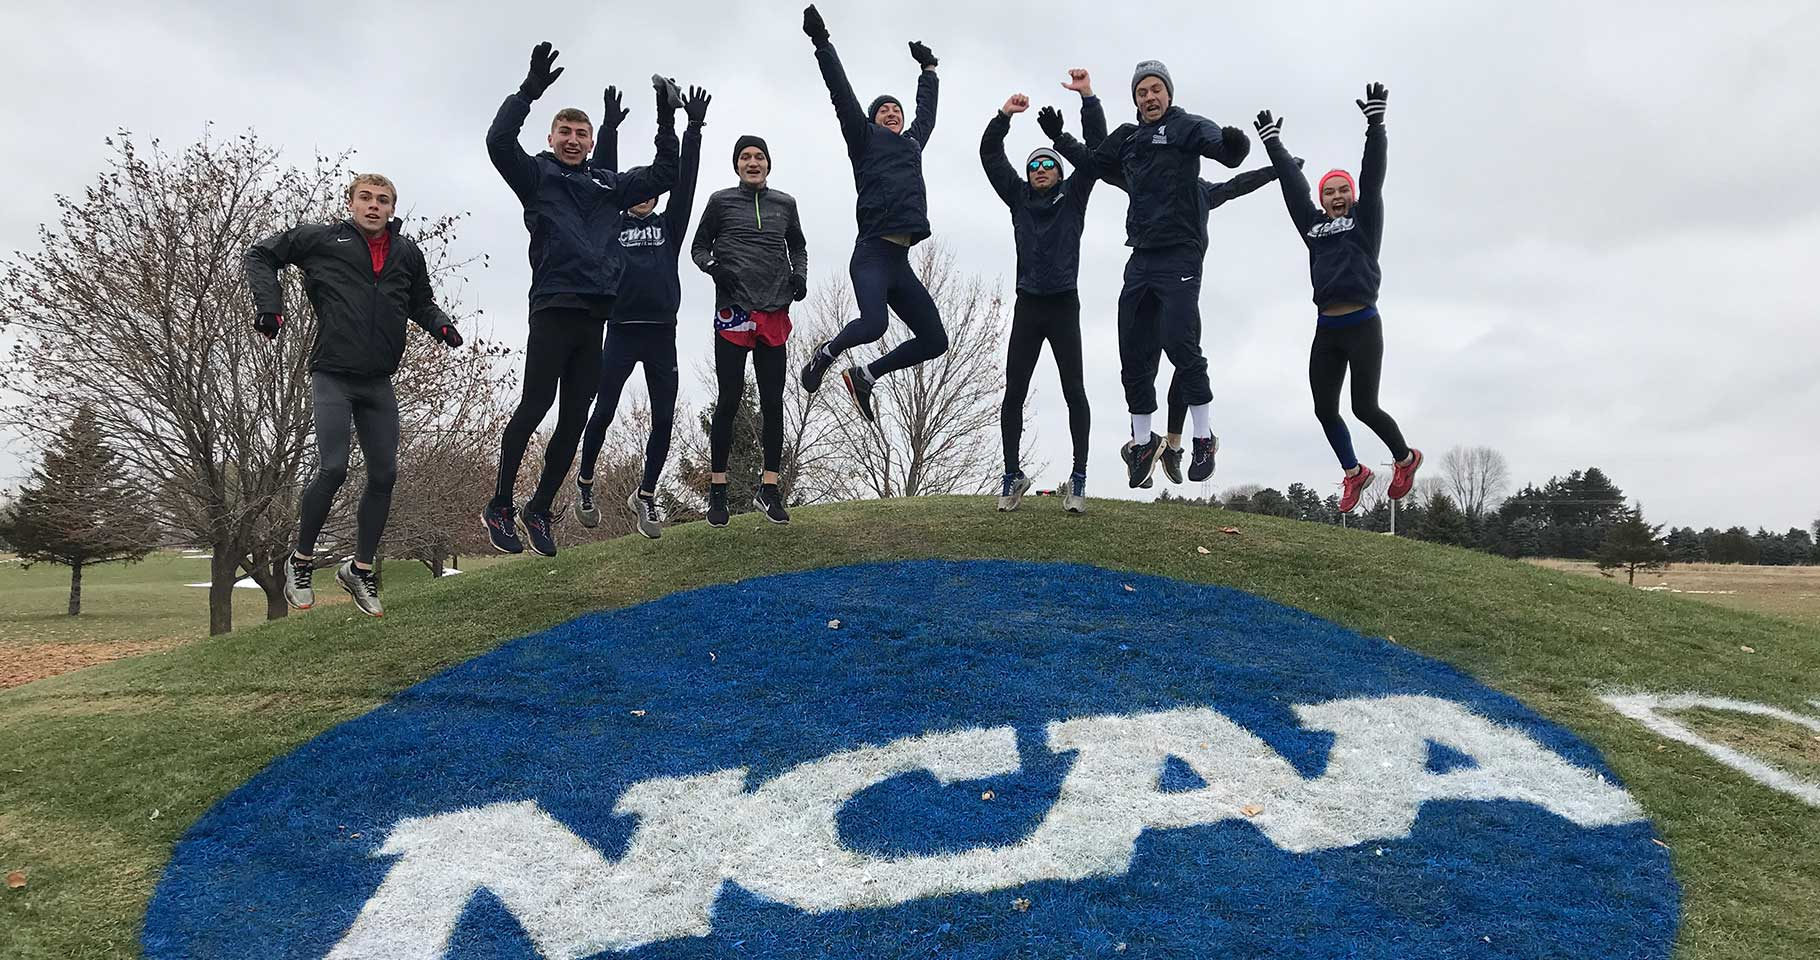 Several members of the cross country teams jump in the air